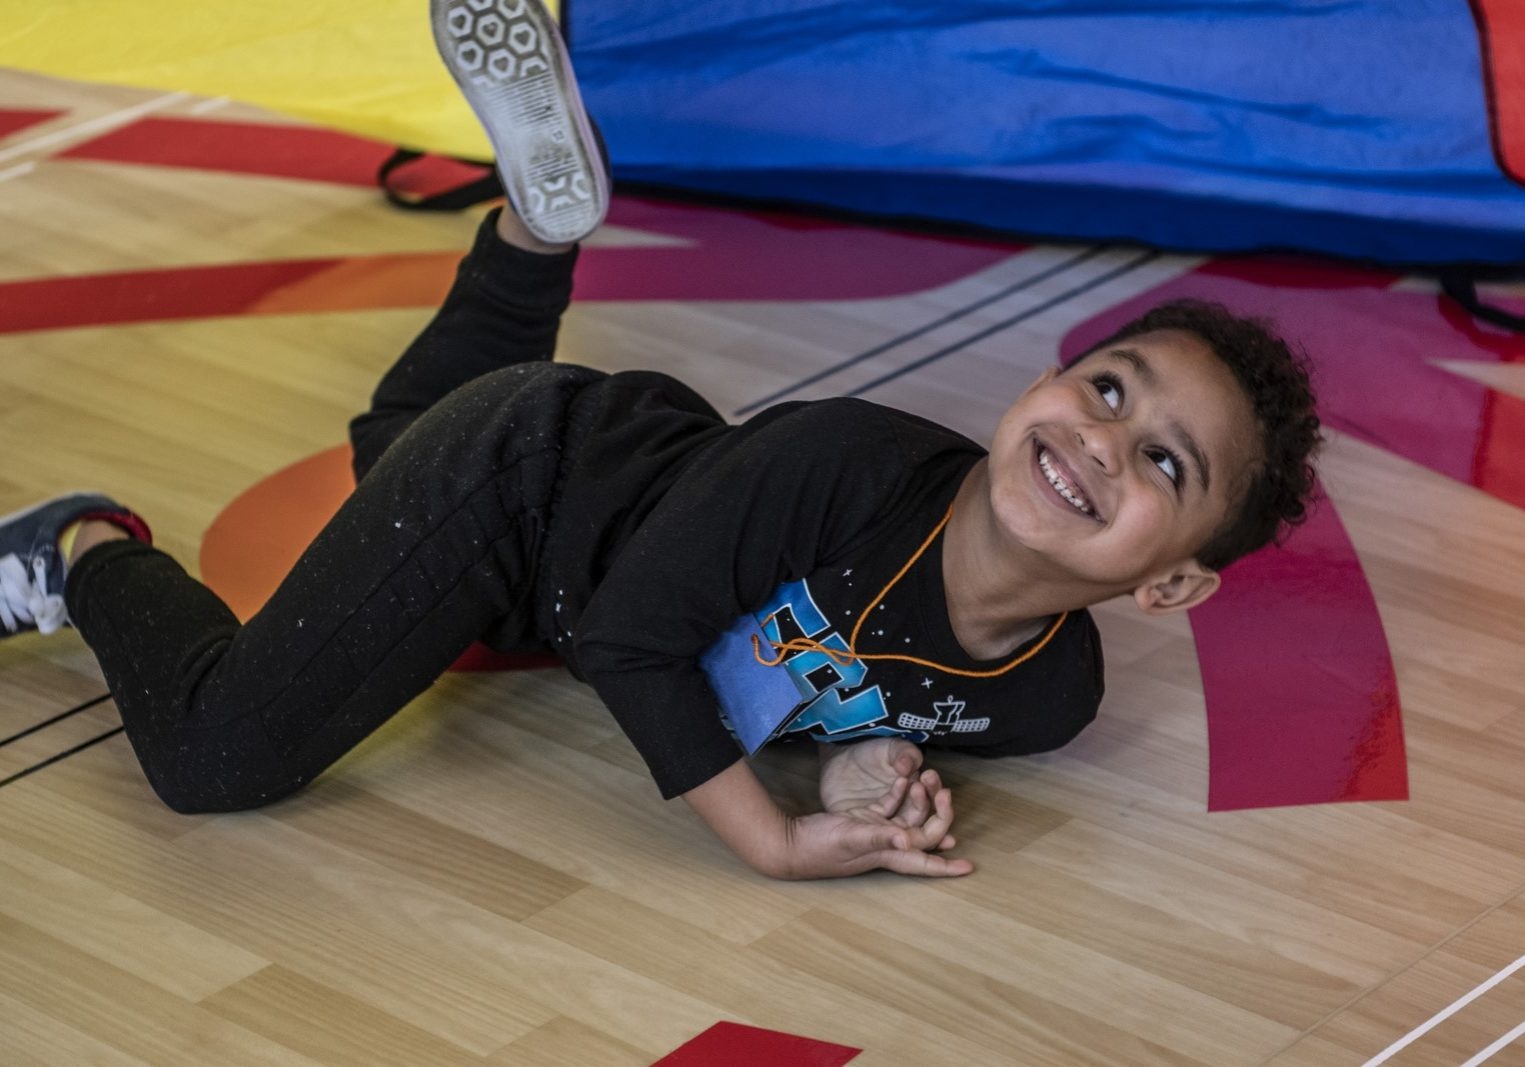 Young athlete laying on belly under a parachute and looking up while smiling